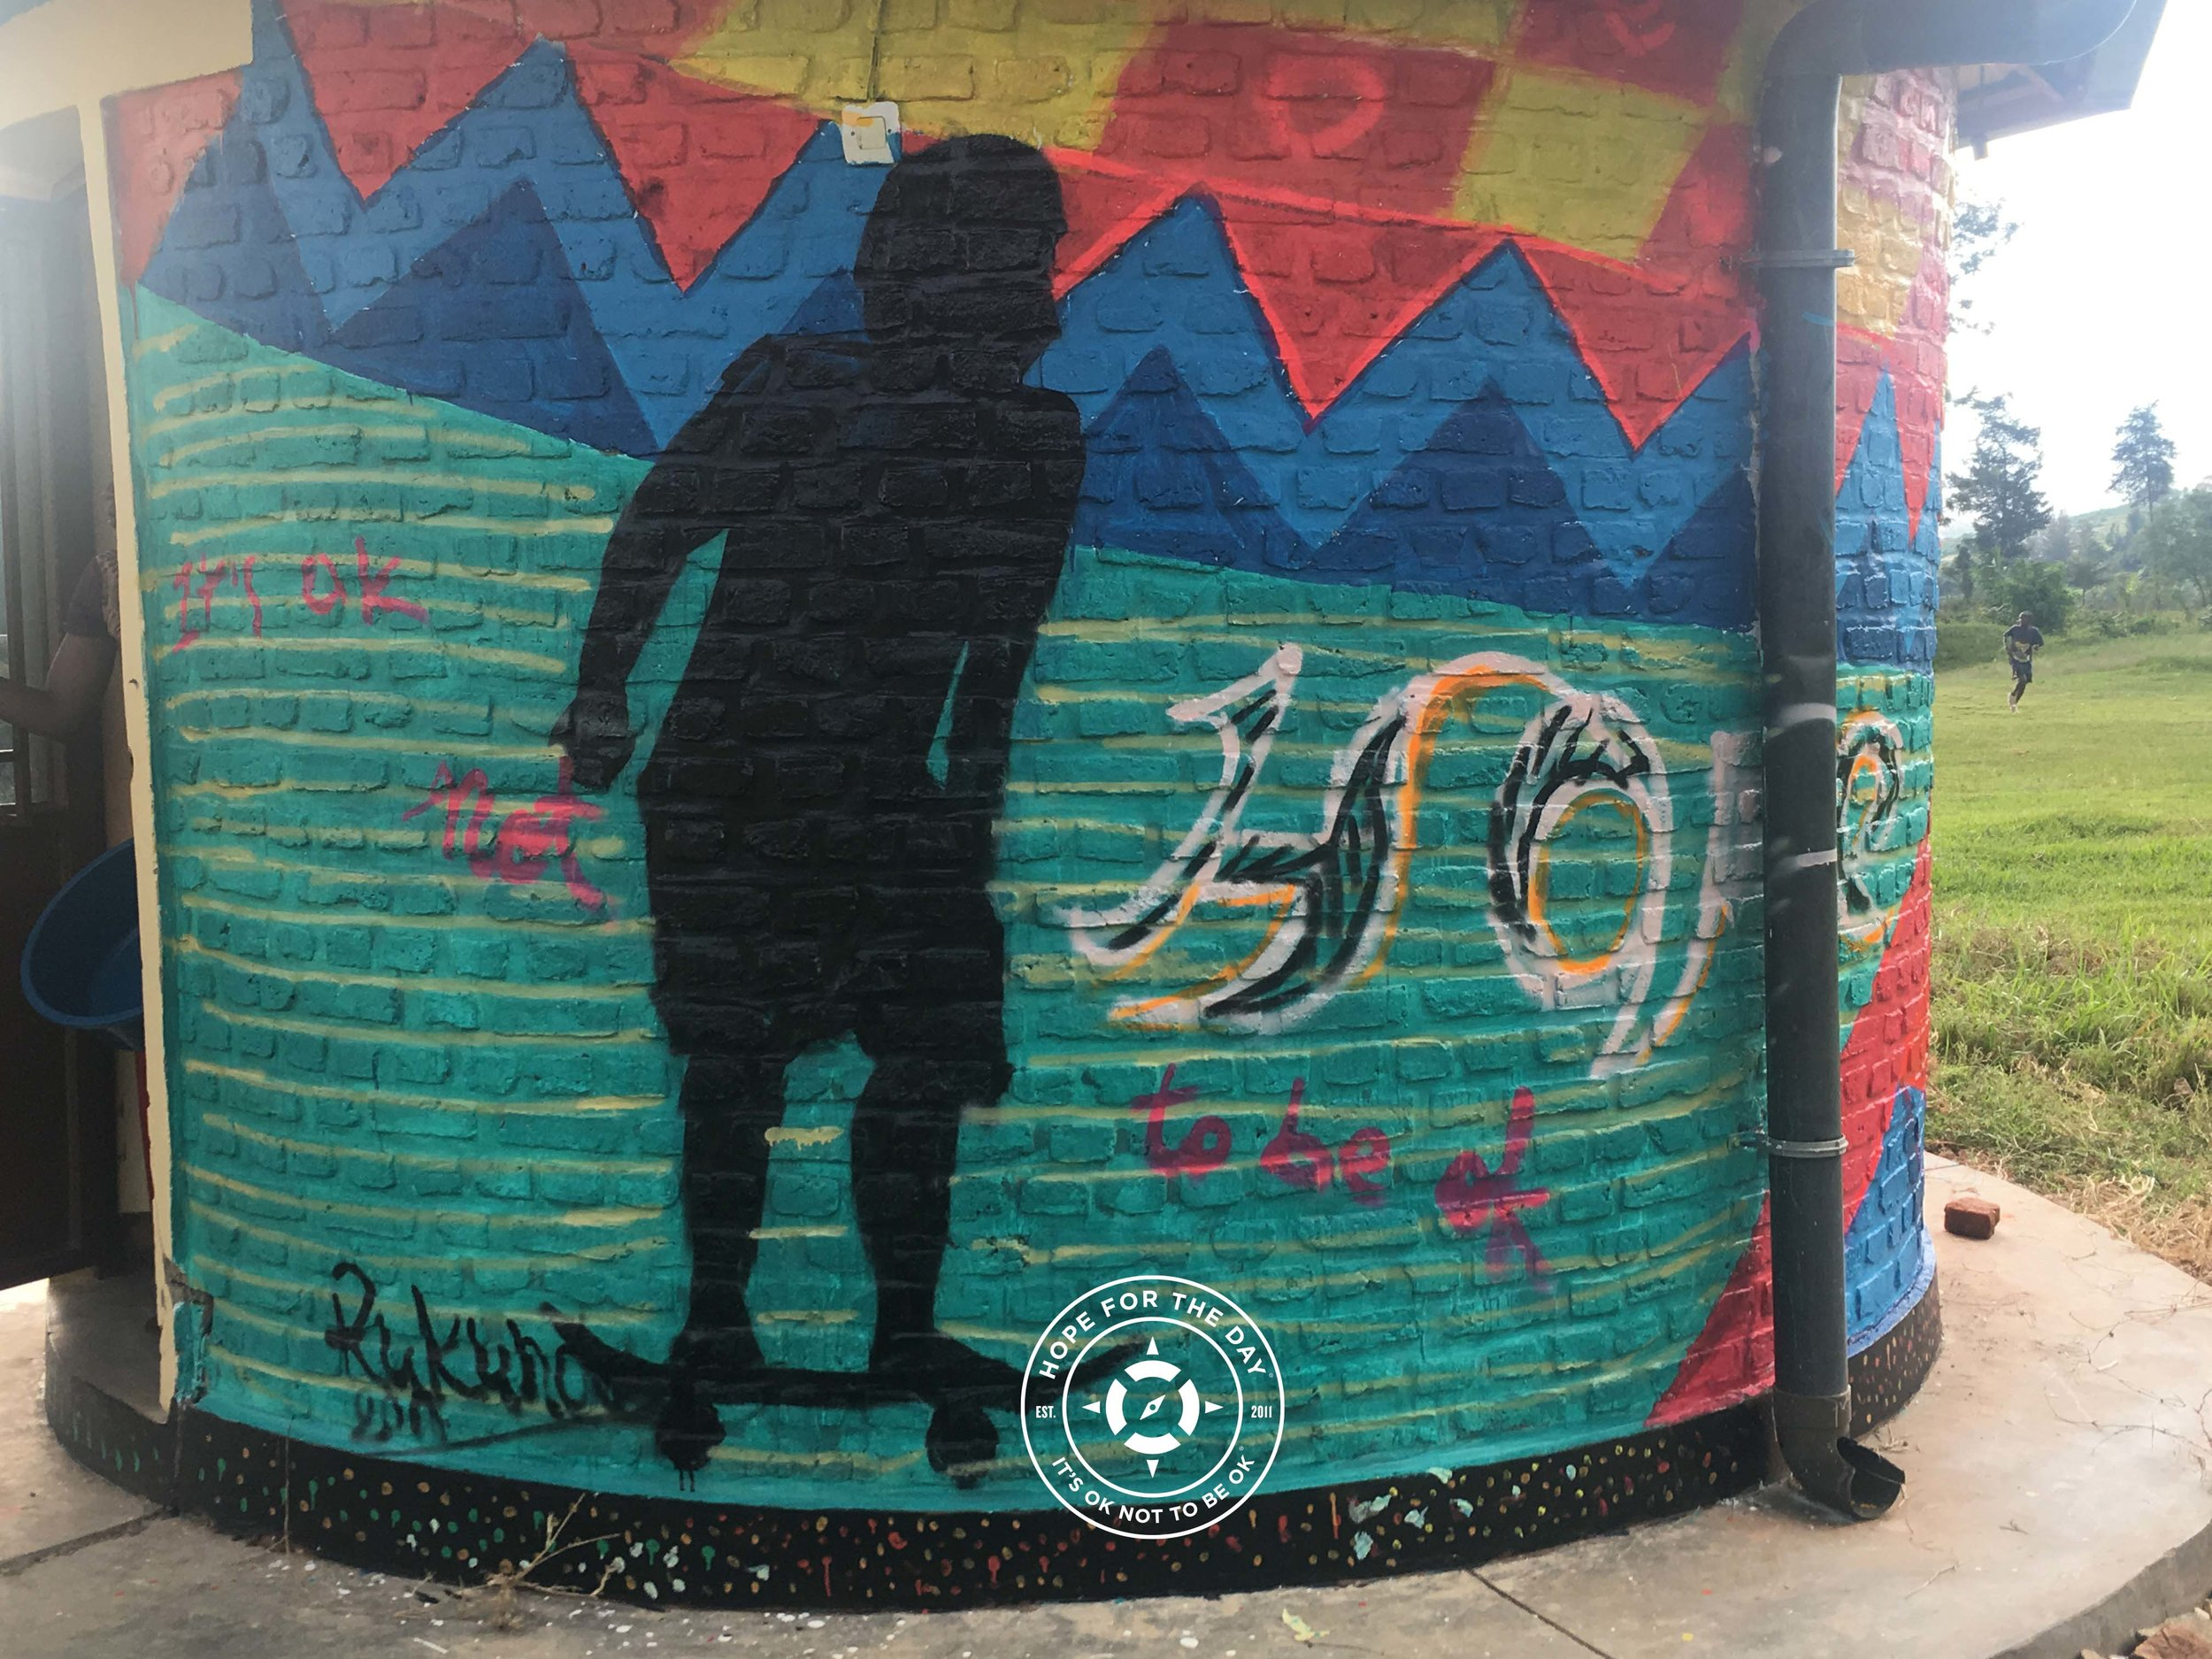 A mural painted during the SkateAid event in Kigali. Photo: Nancy Bartosz